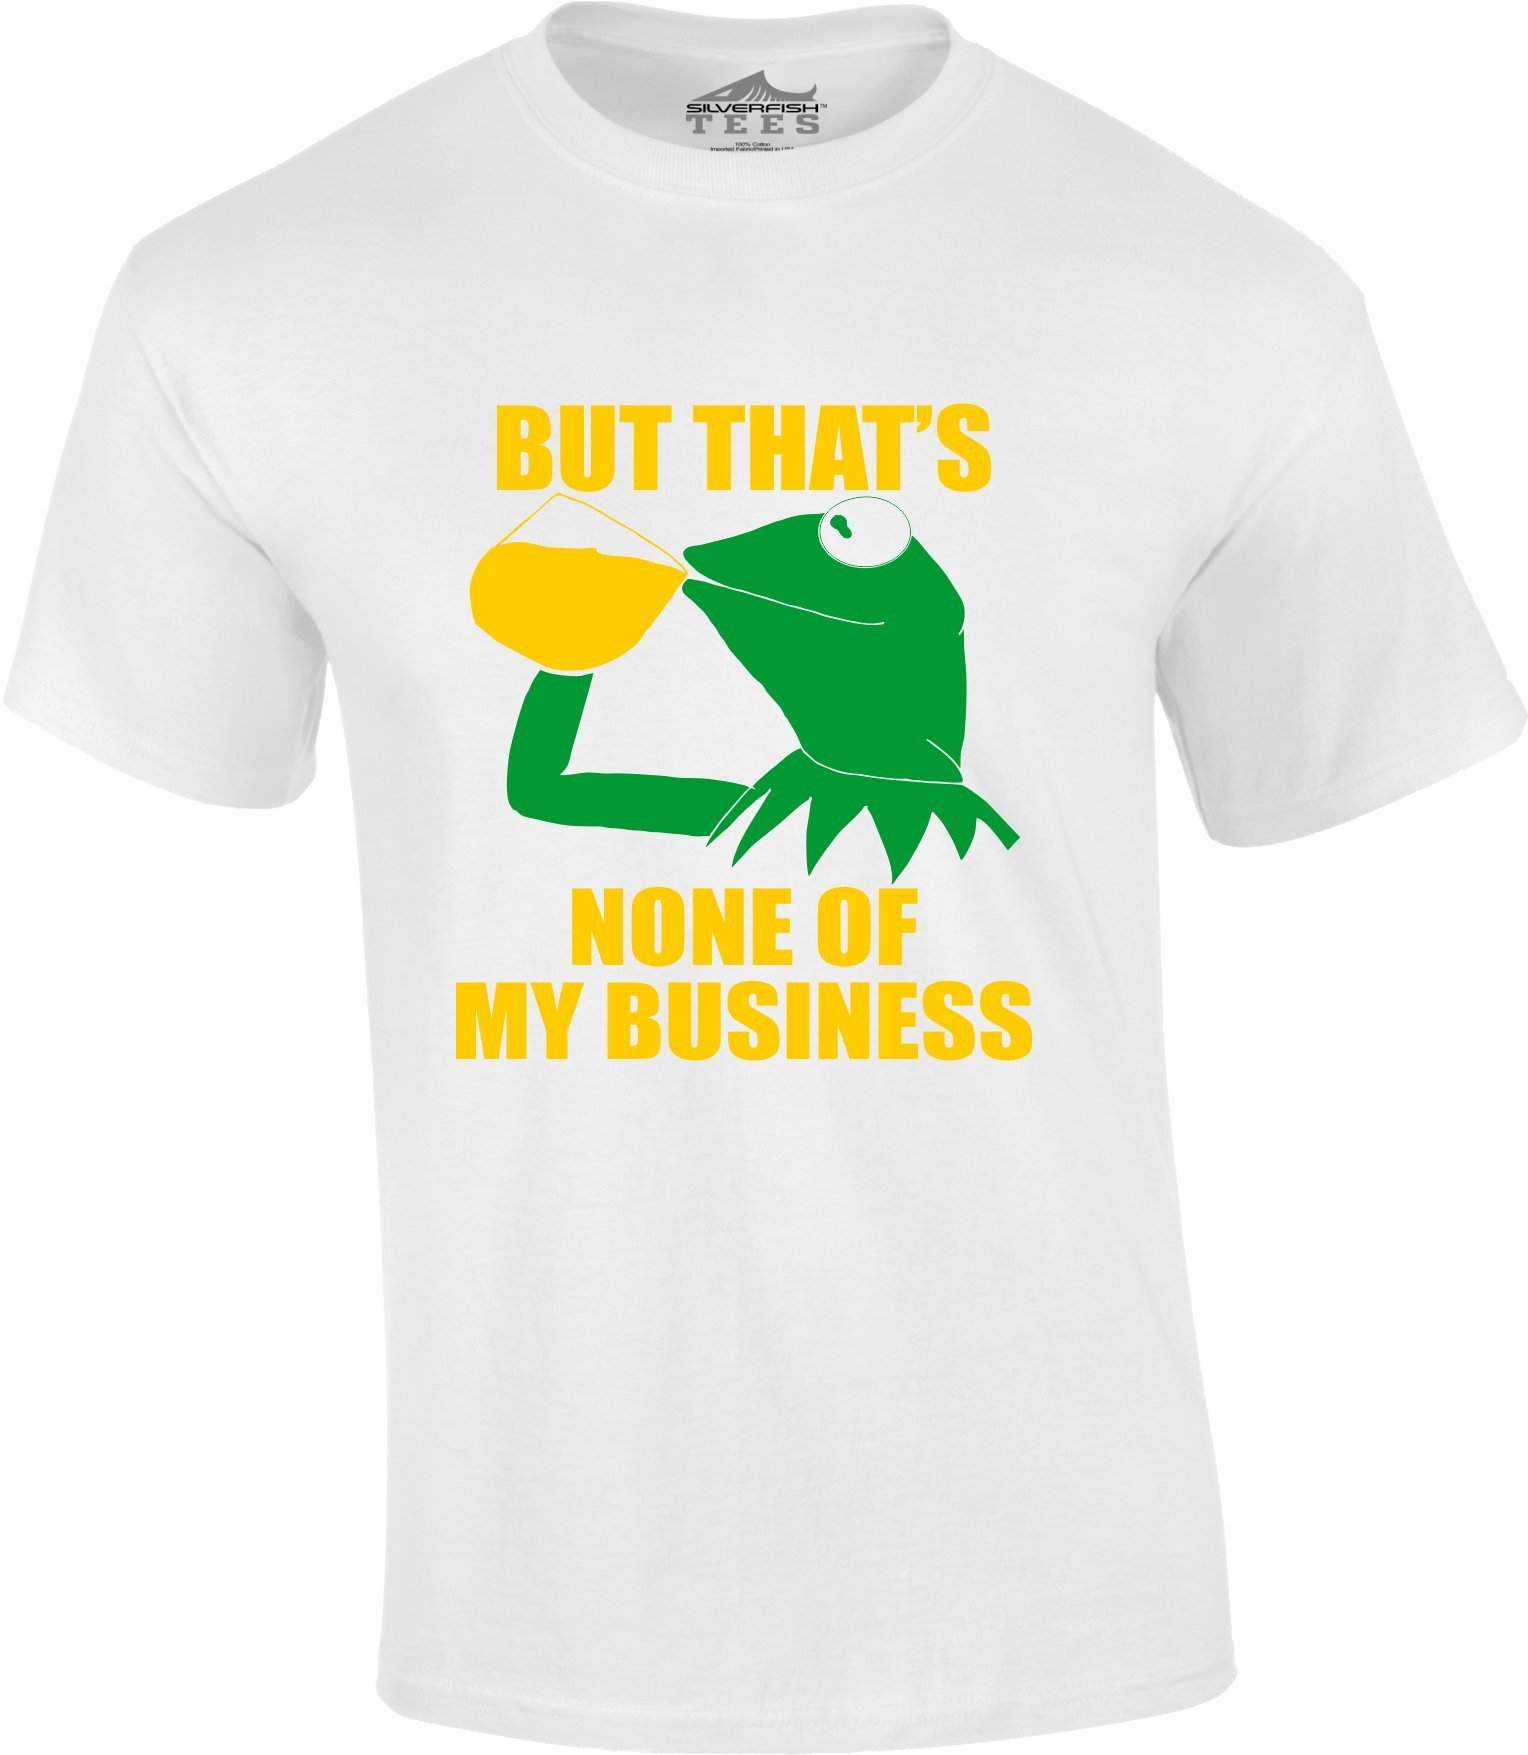 Kermit The Frog Sipping TeaBut That's None Of My Business Meme T-Shirt